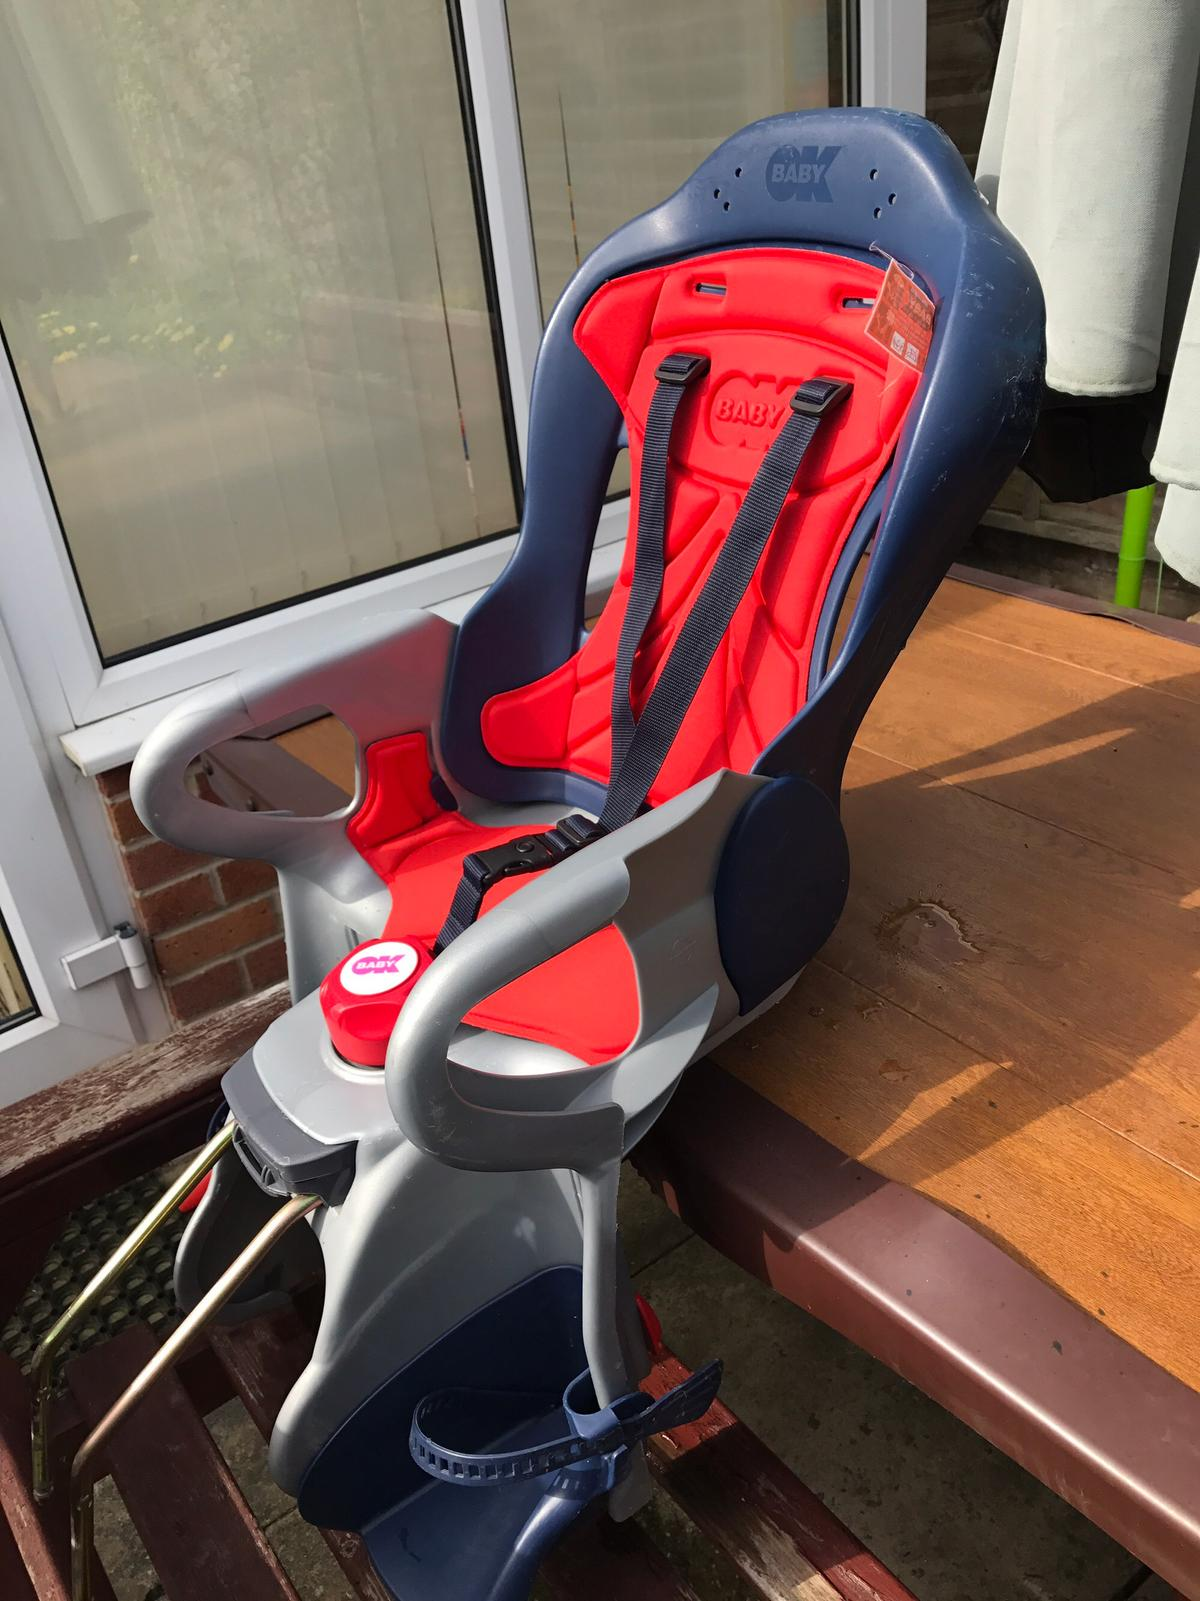 Ok Baby Sirius Reclining Child Bike Seat In De74 Donington Fur